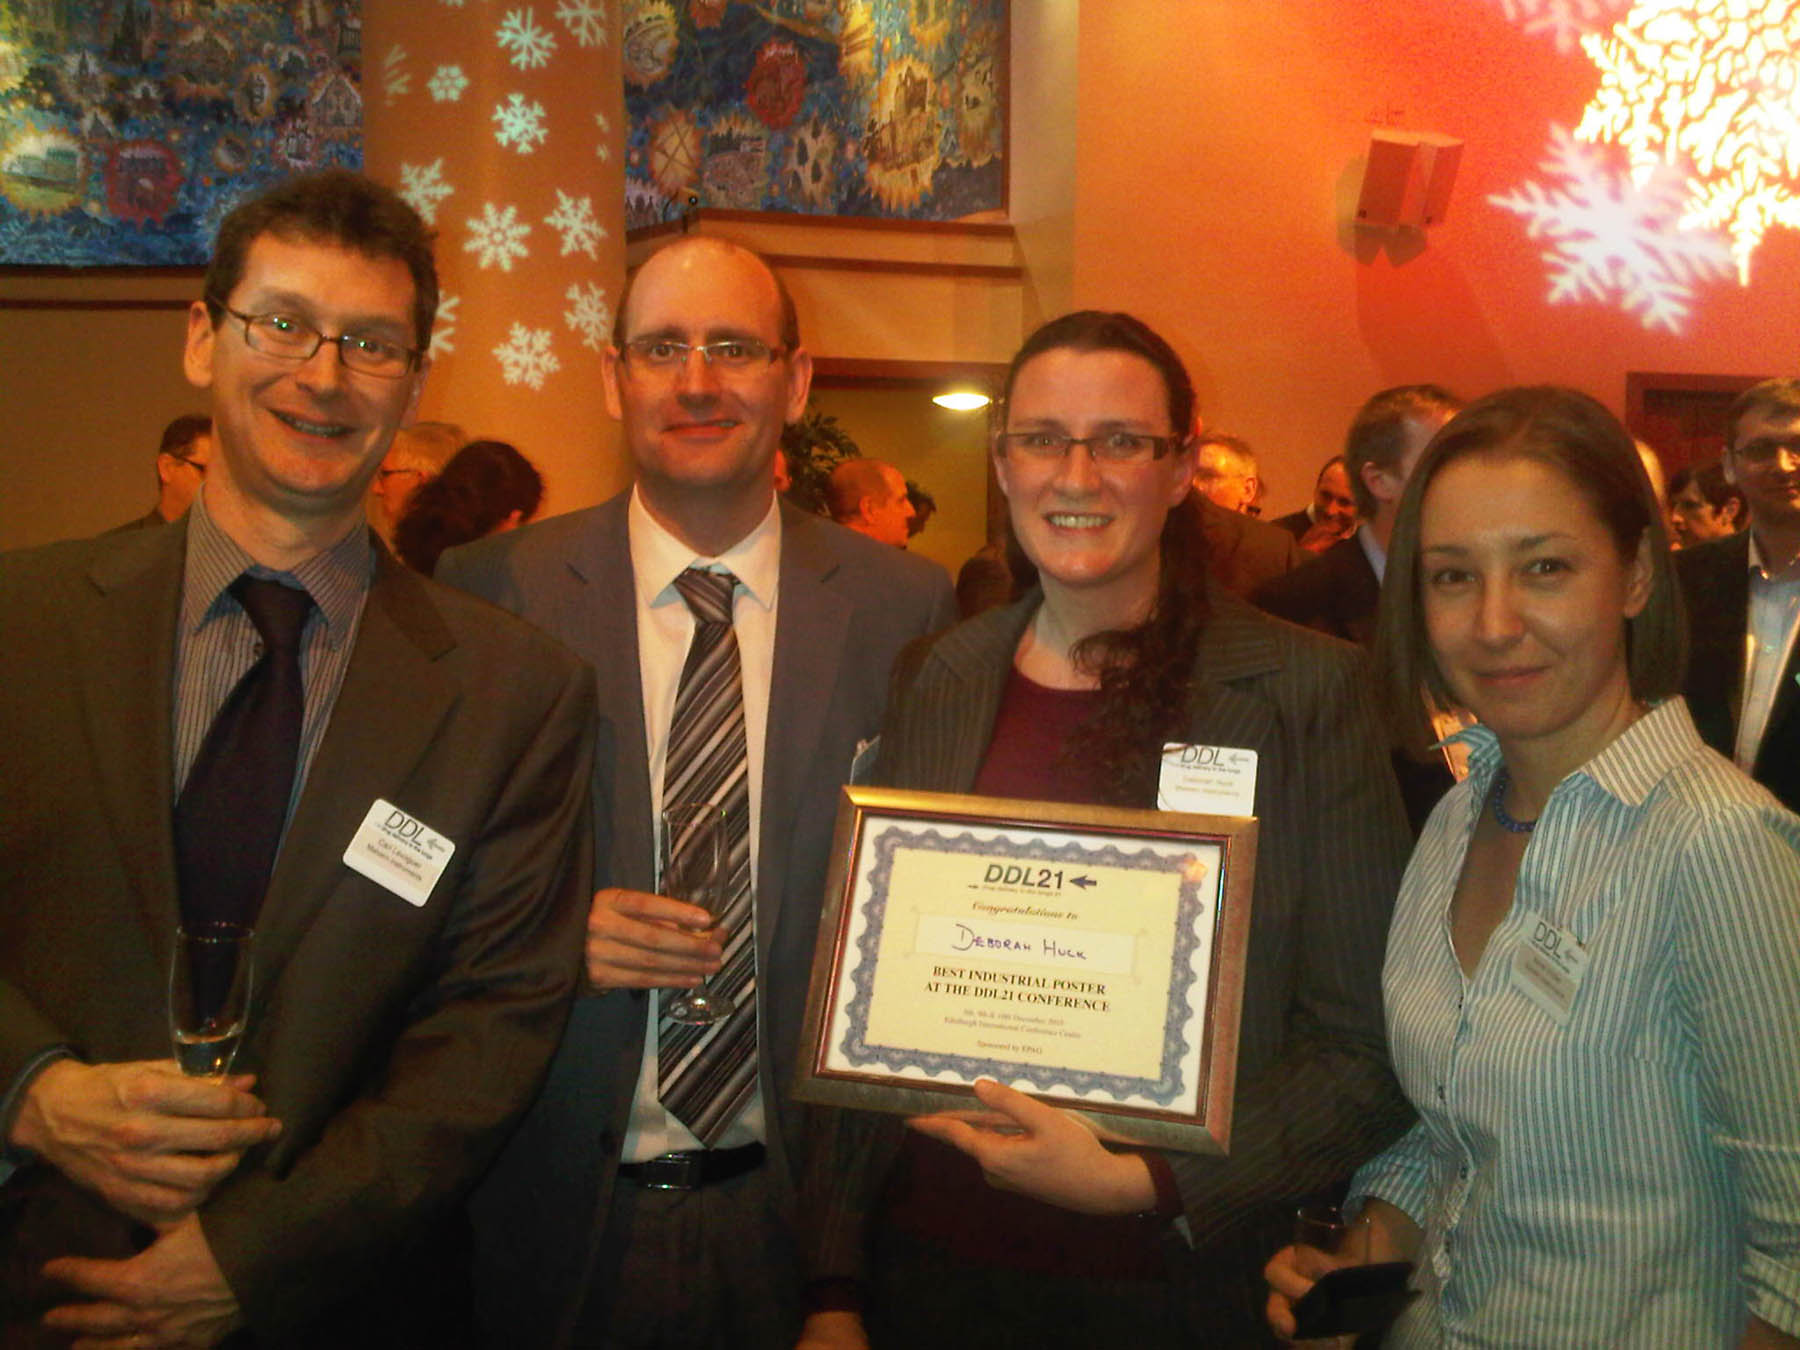 Malvern team receives DDL Industry Poster Award (from left: Carl Levoguer, Andrew France, Deborah Huck, Anne Virden).